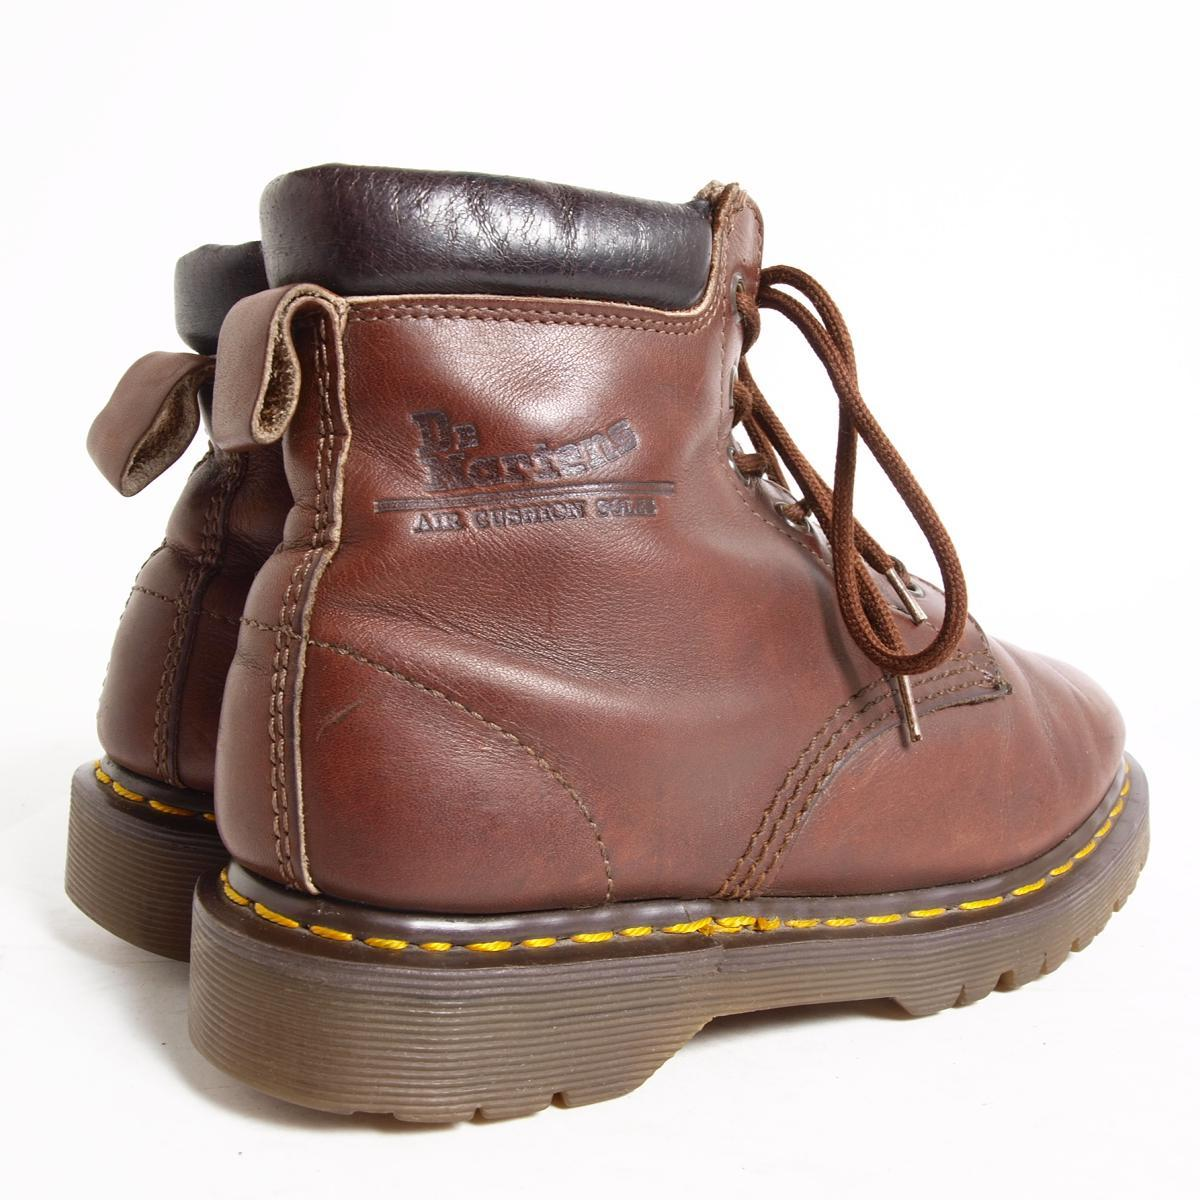 6 hall boots men 25.0cm Dr.Martens /bol1878 made in the doctor Martin U.K.